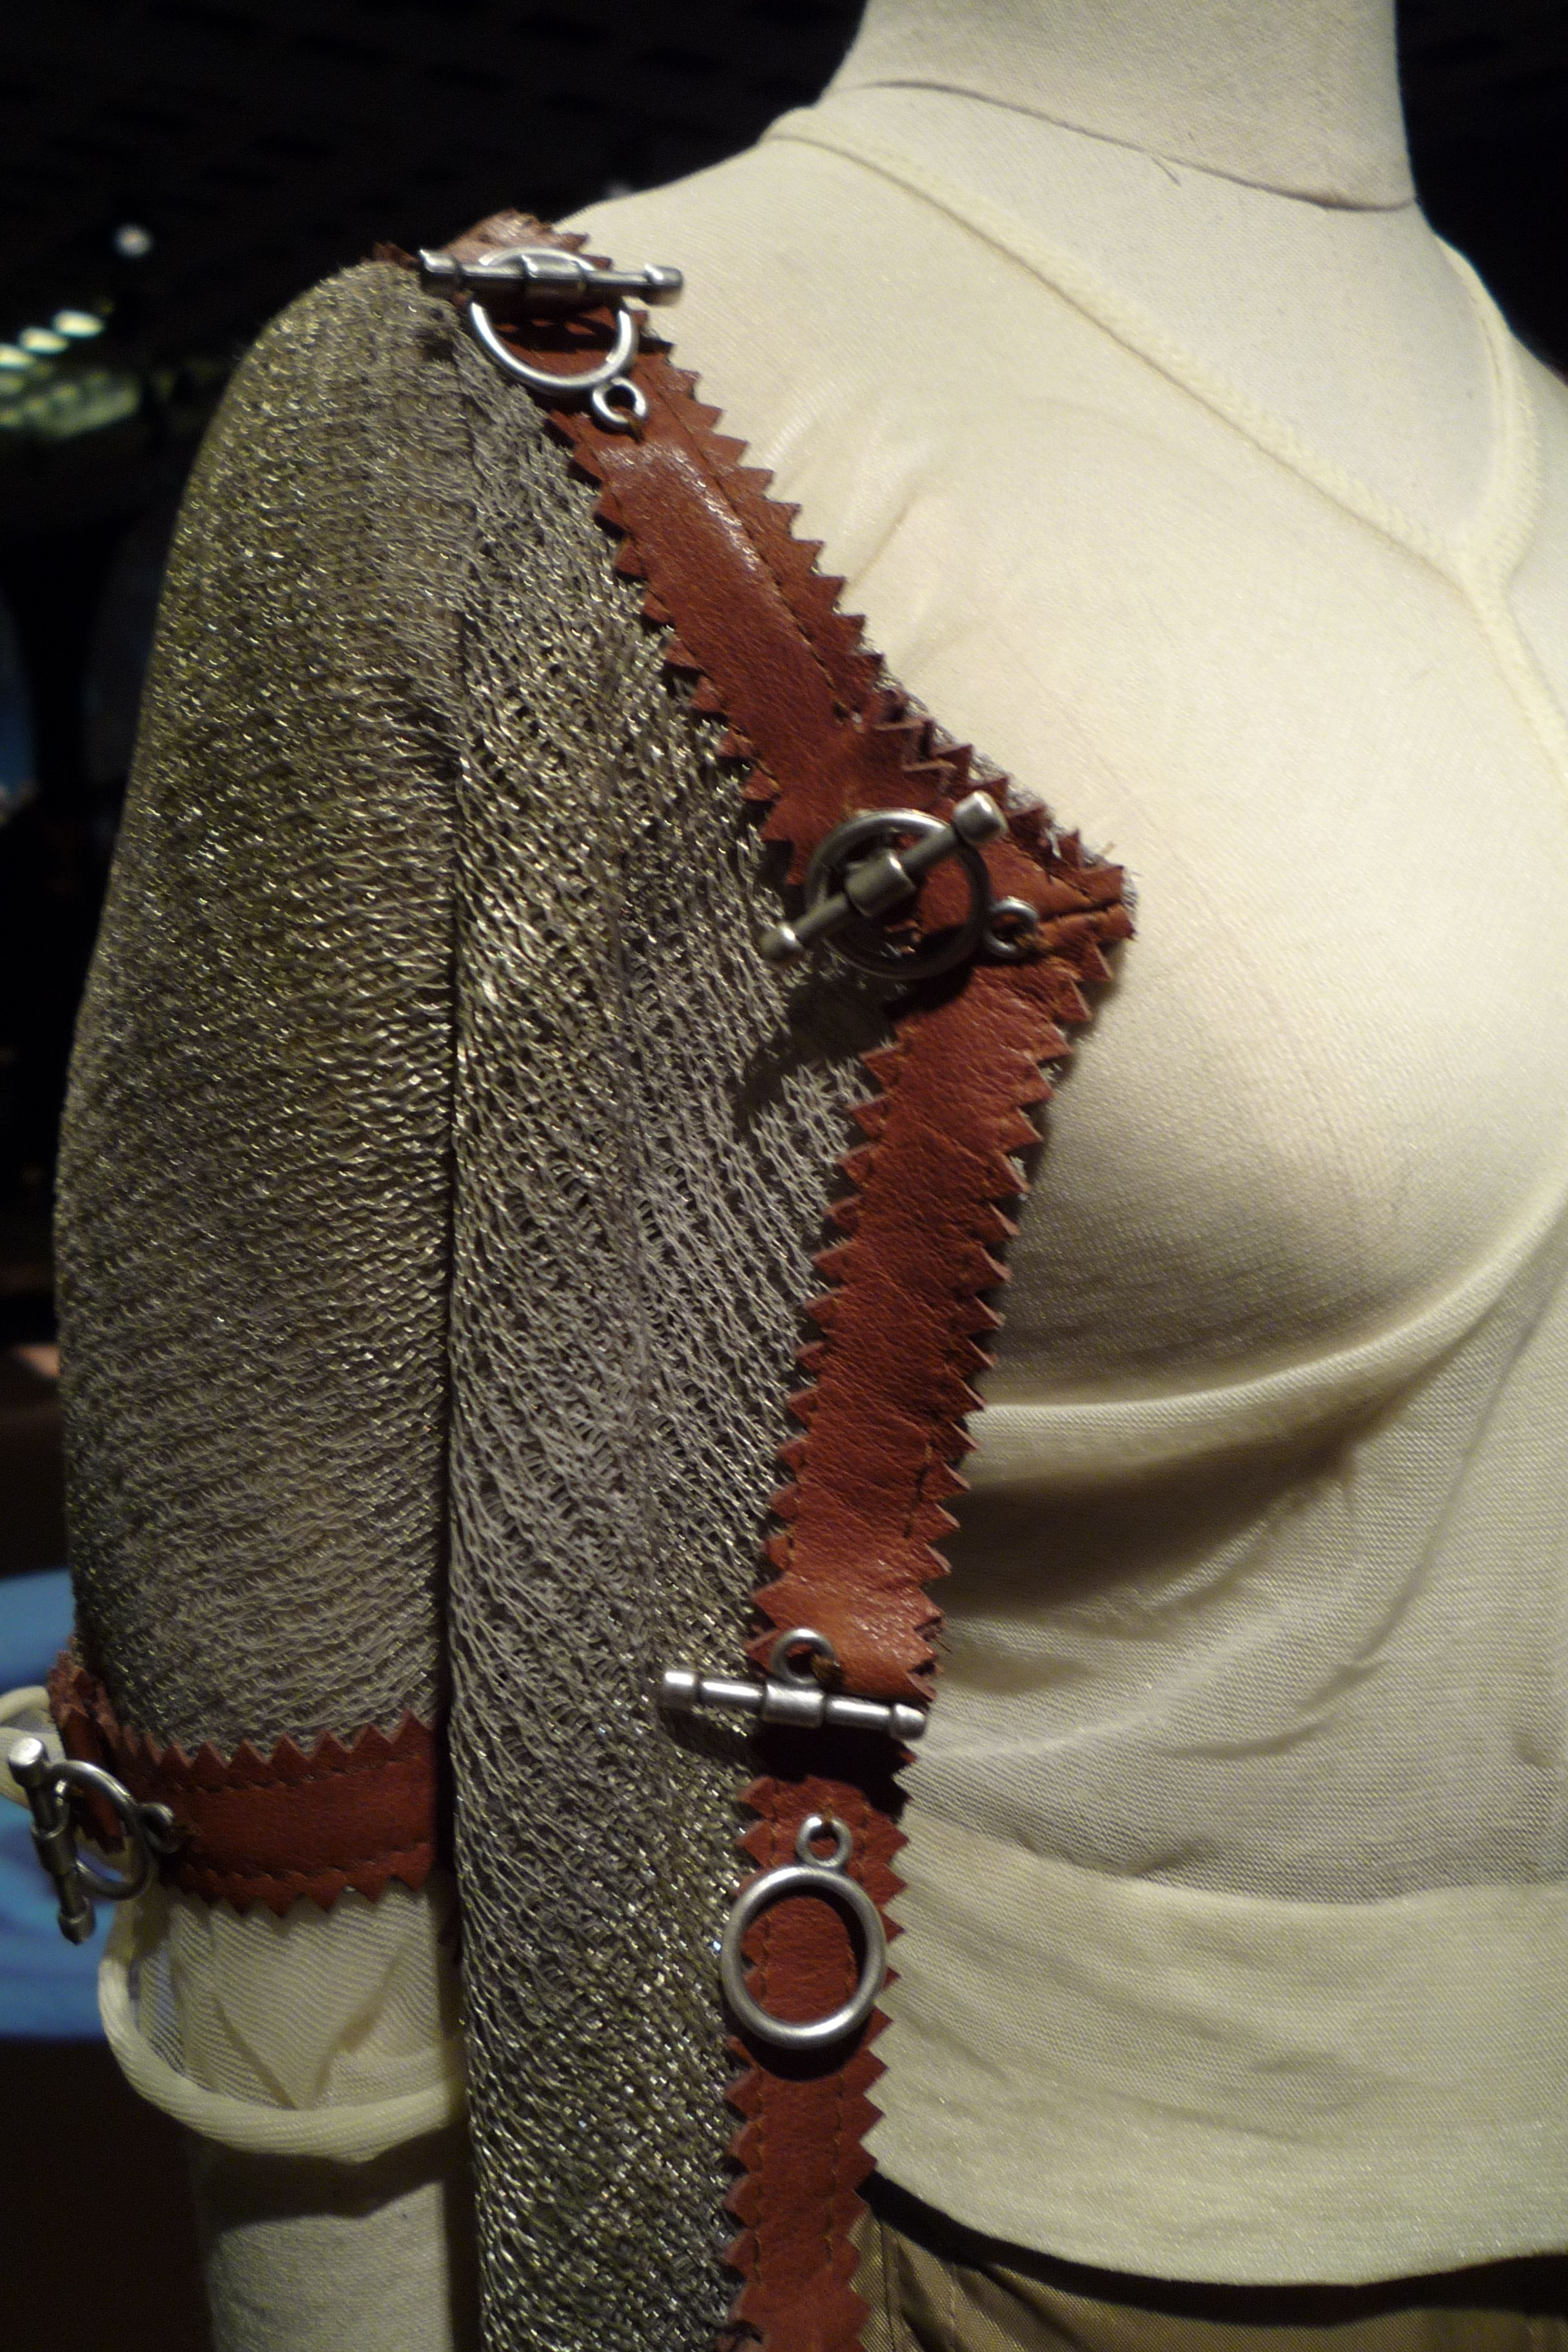 Leather trim detail on knit